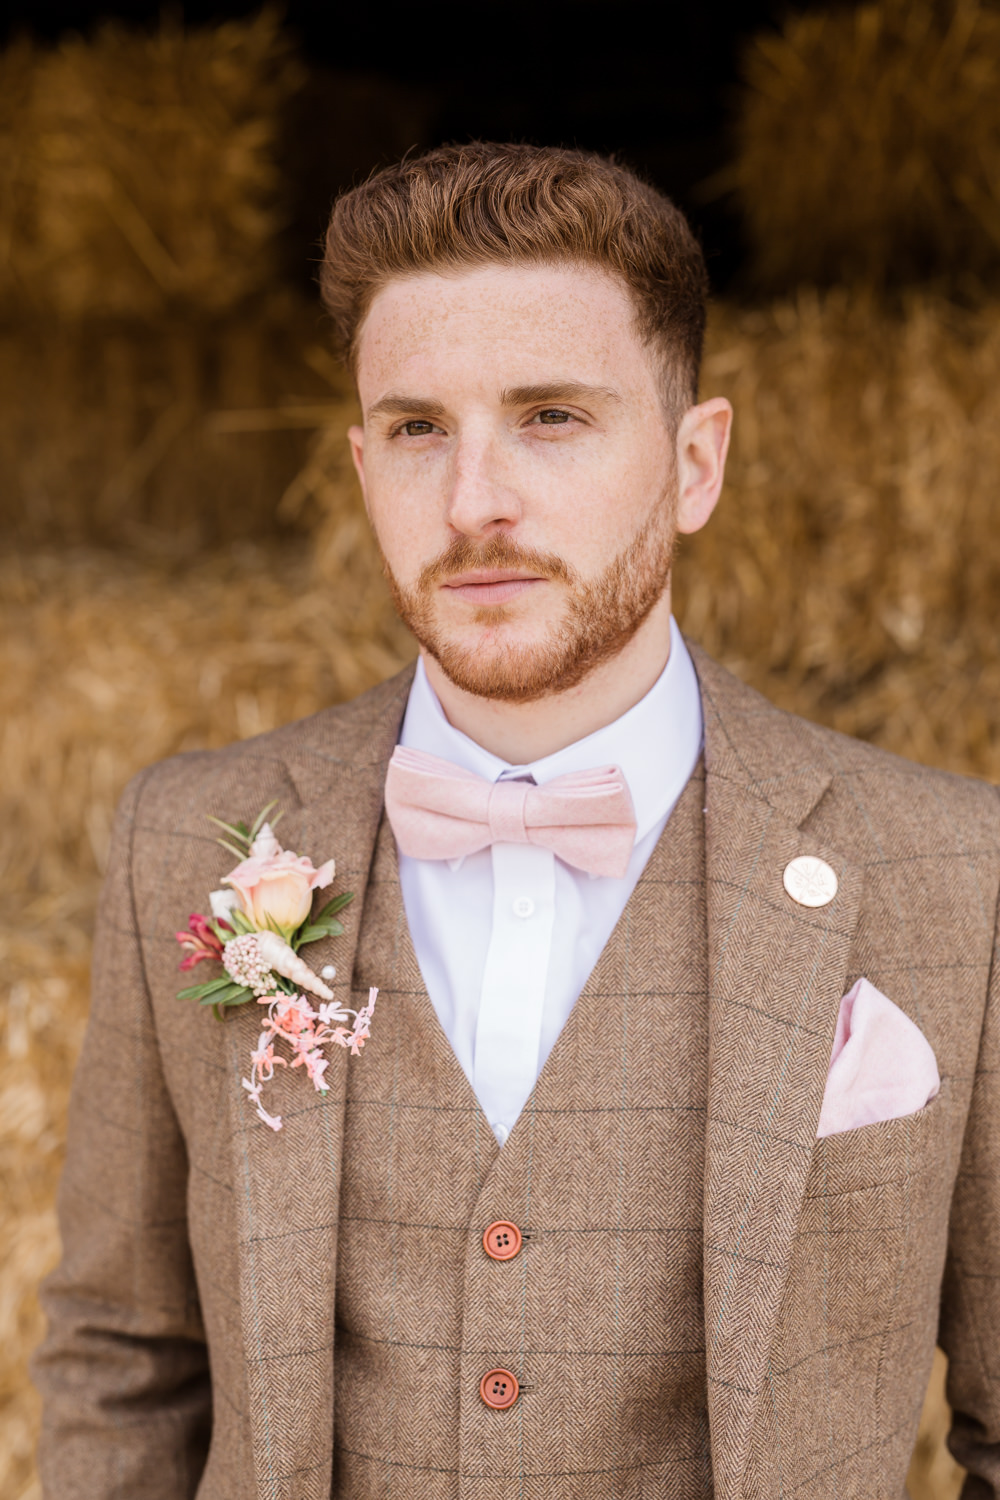 Groom Brown Tweed Suit Pink Bow Tie Buttonhole Tropical Boho Countryside Wedding Ideas Sarah Brookes Photography